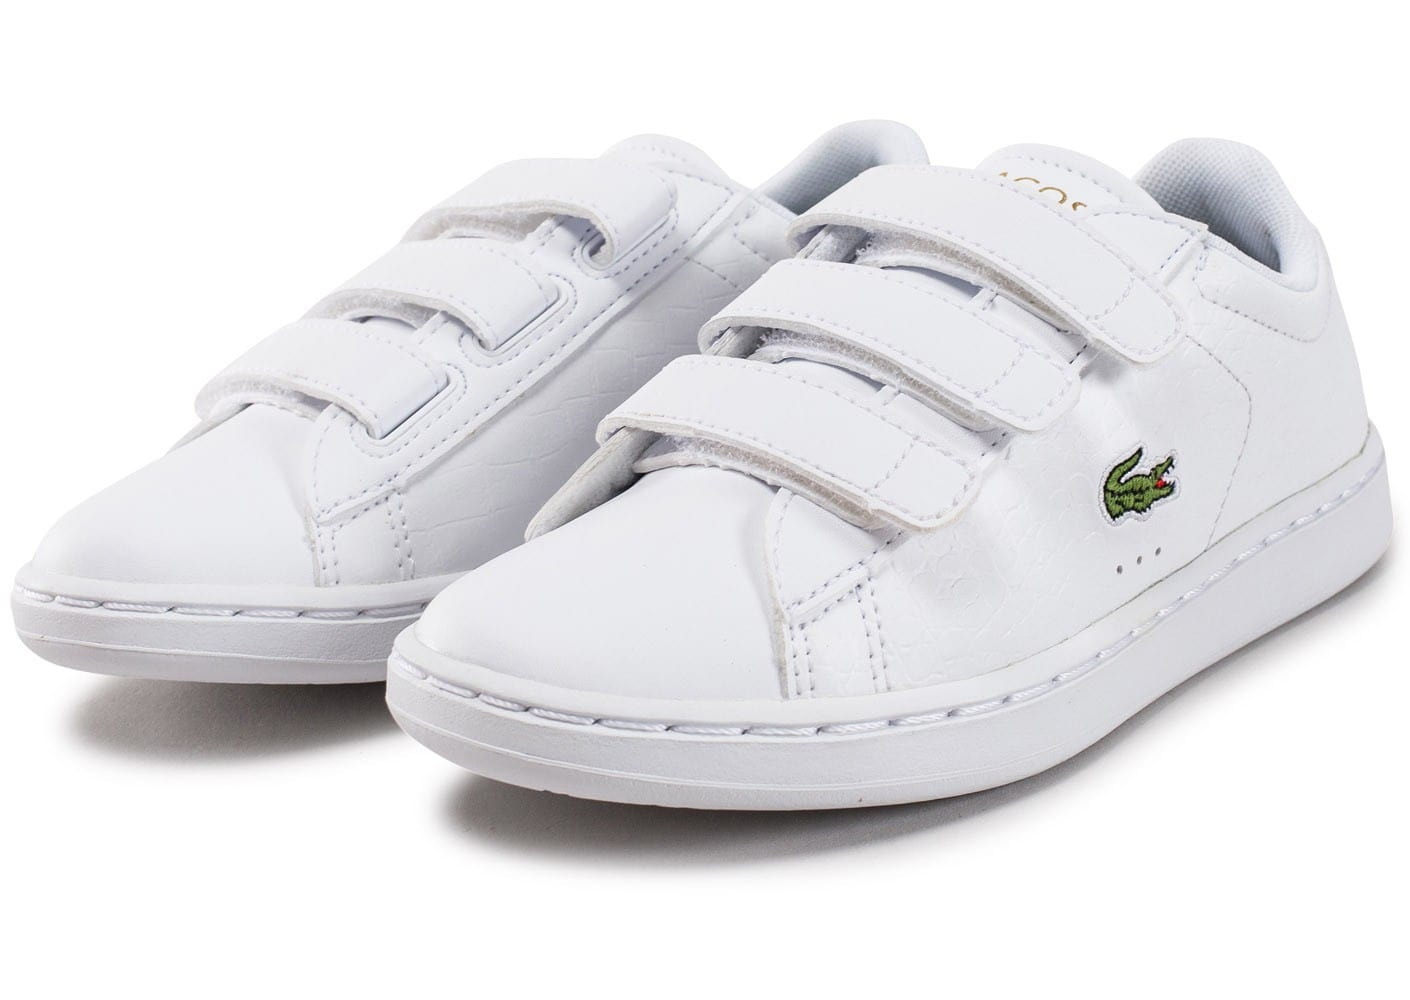 c14a3abad1 Lacoste Croc Chaussures Evo Carnaby Enfant Chausport Pack Enfant O1rqO